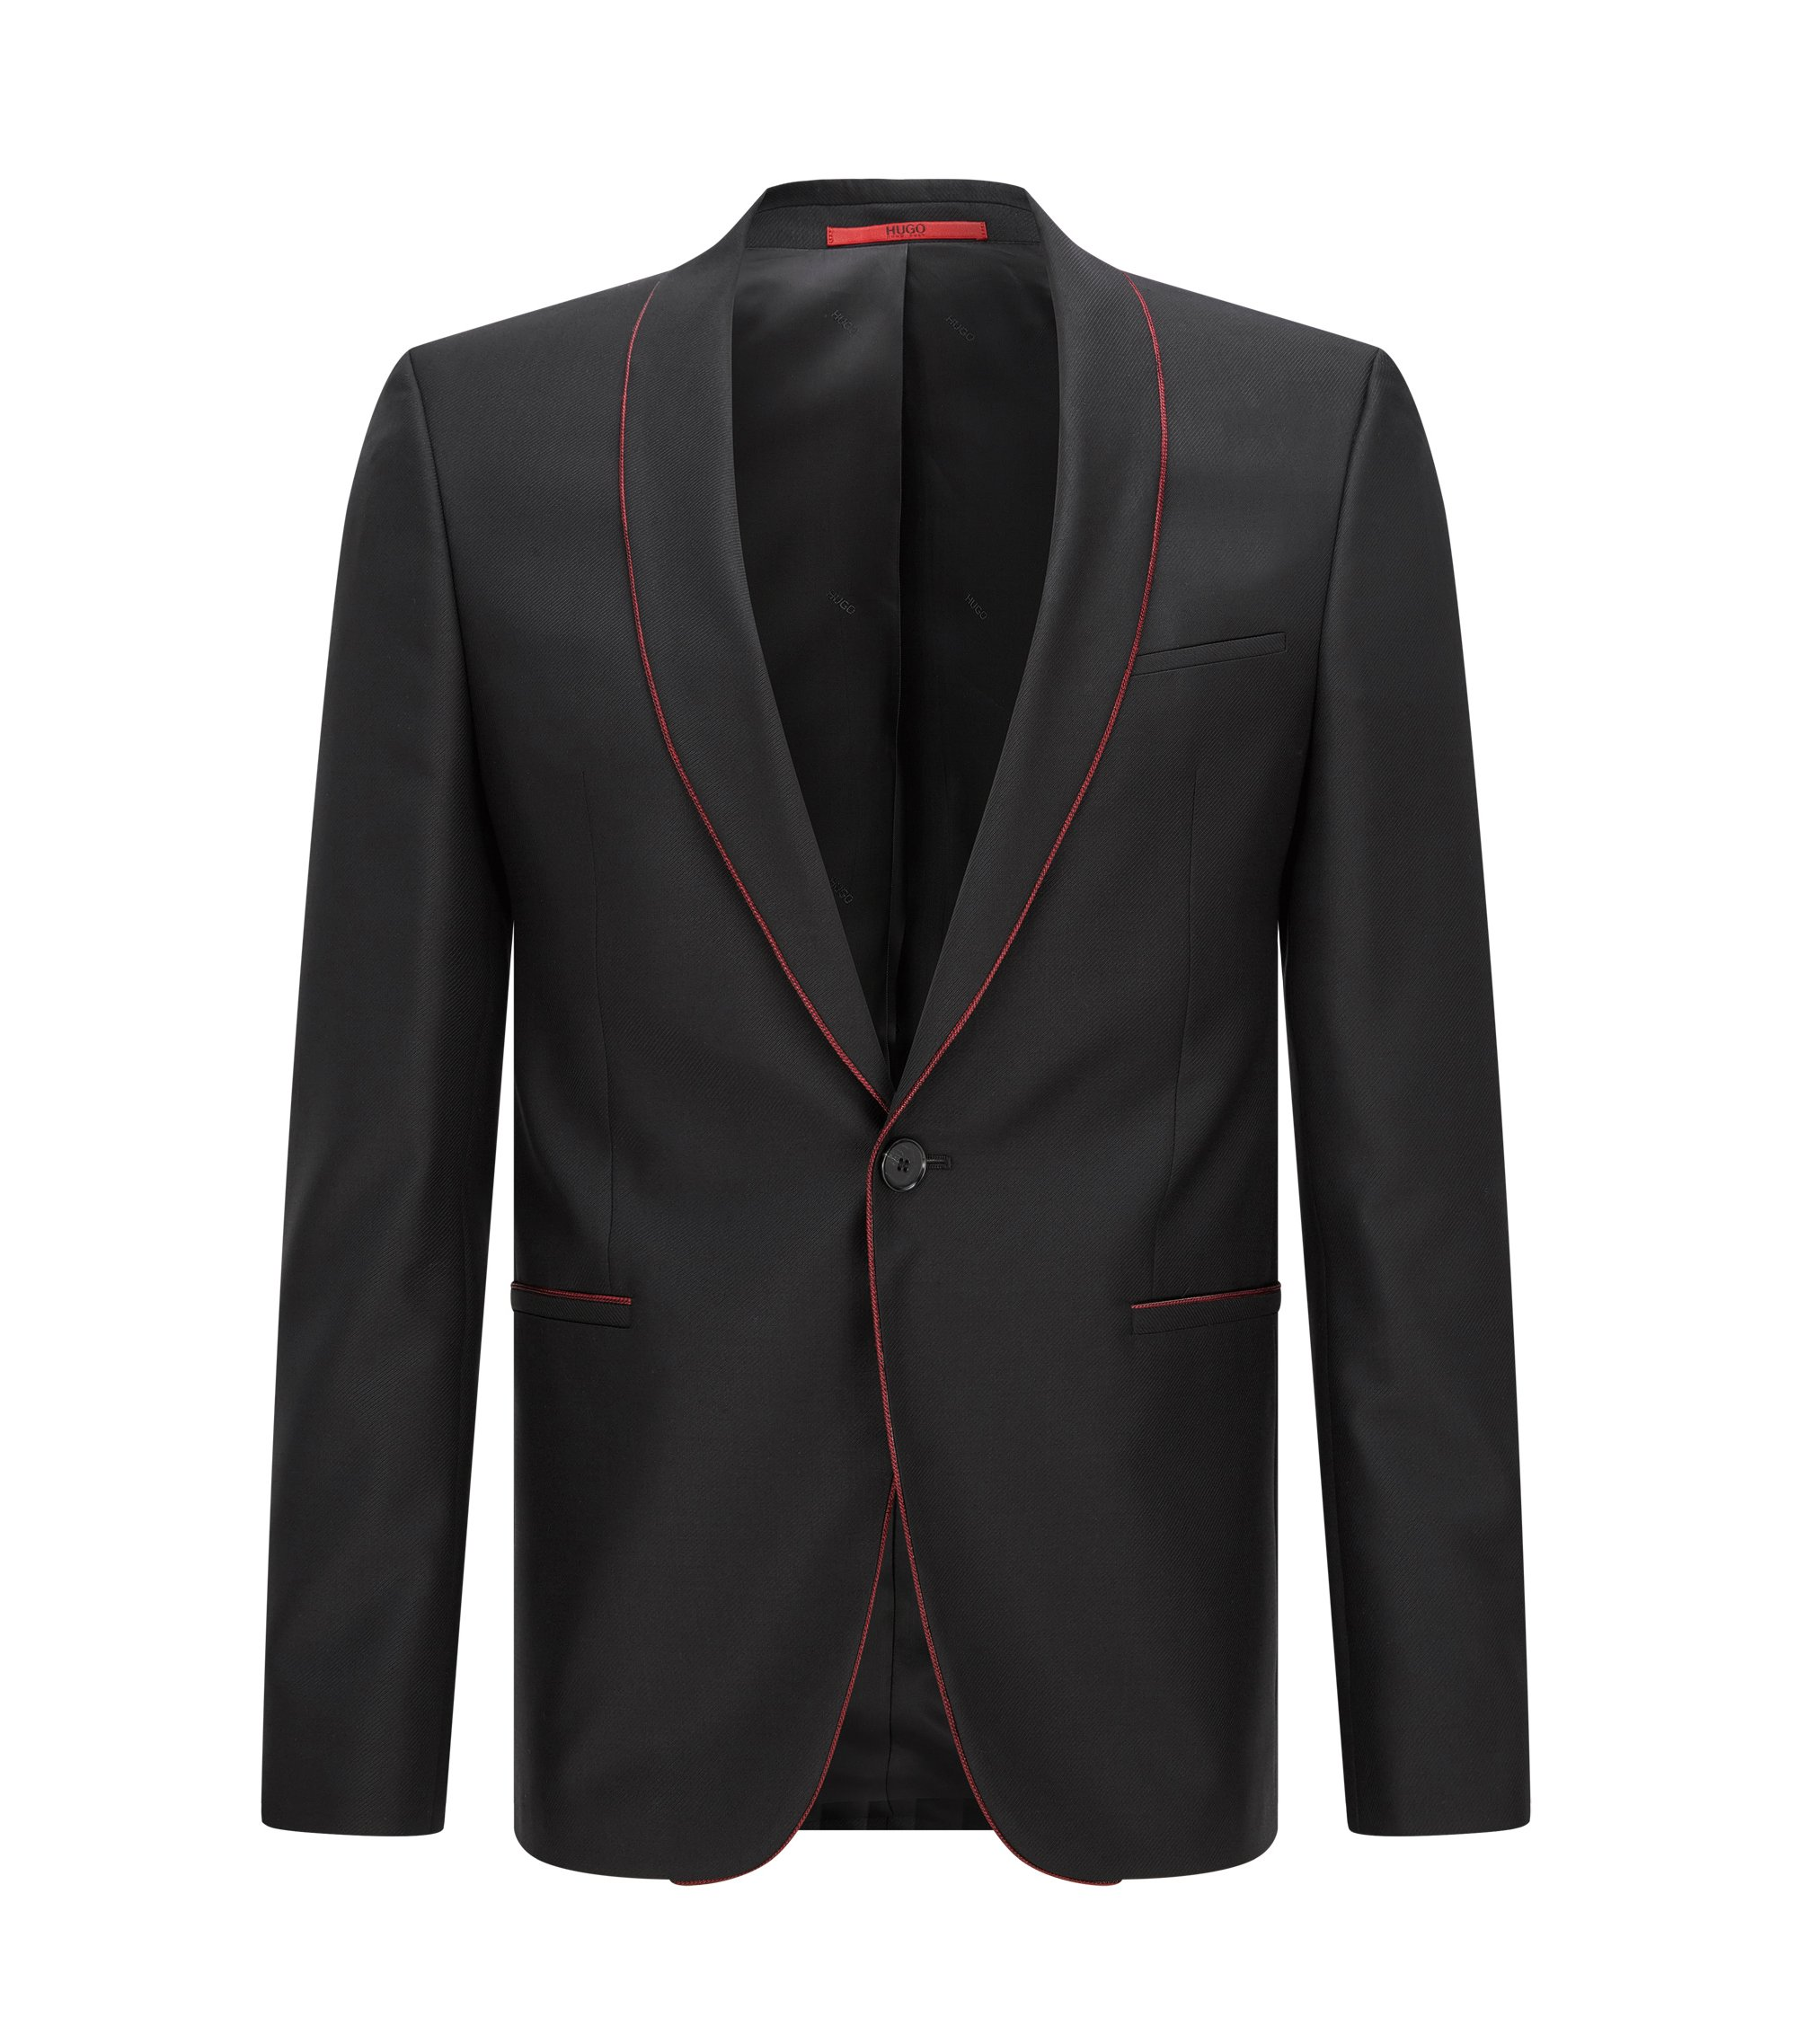 Contrast Virgin Wool Blend Sport Coat, Slim Fit | Arins, Black